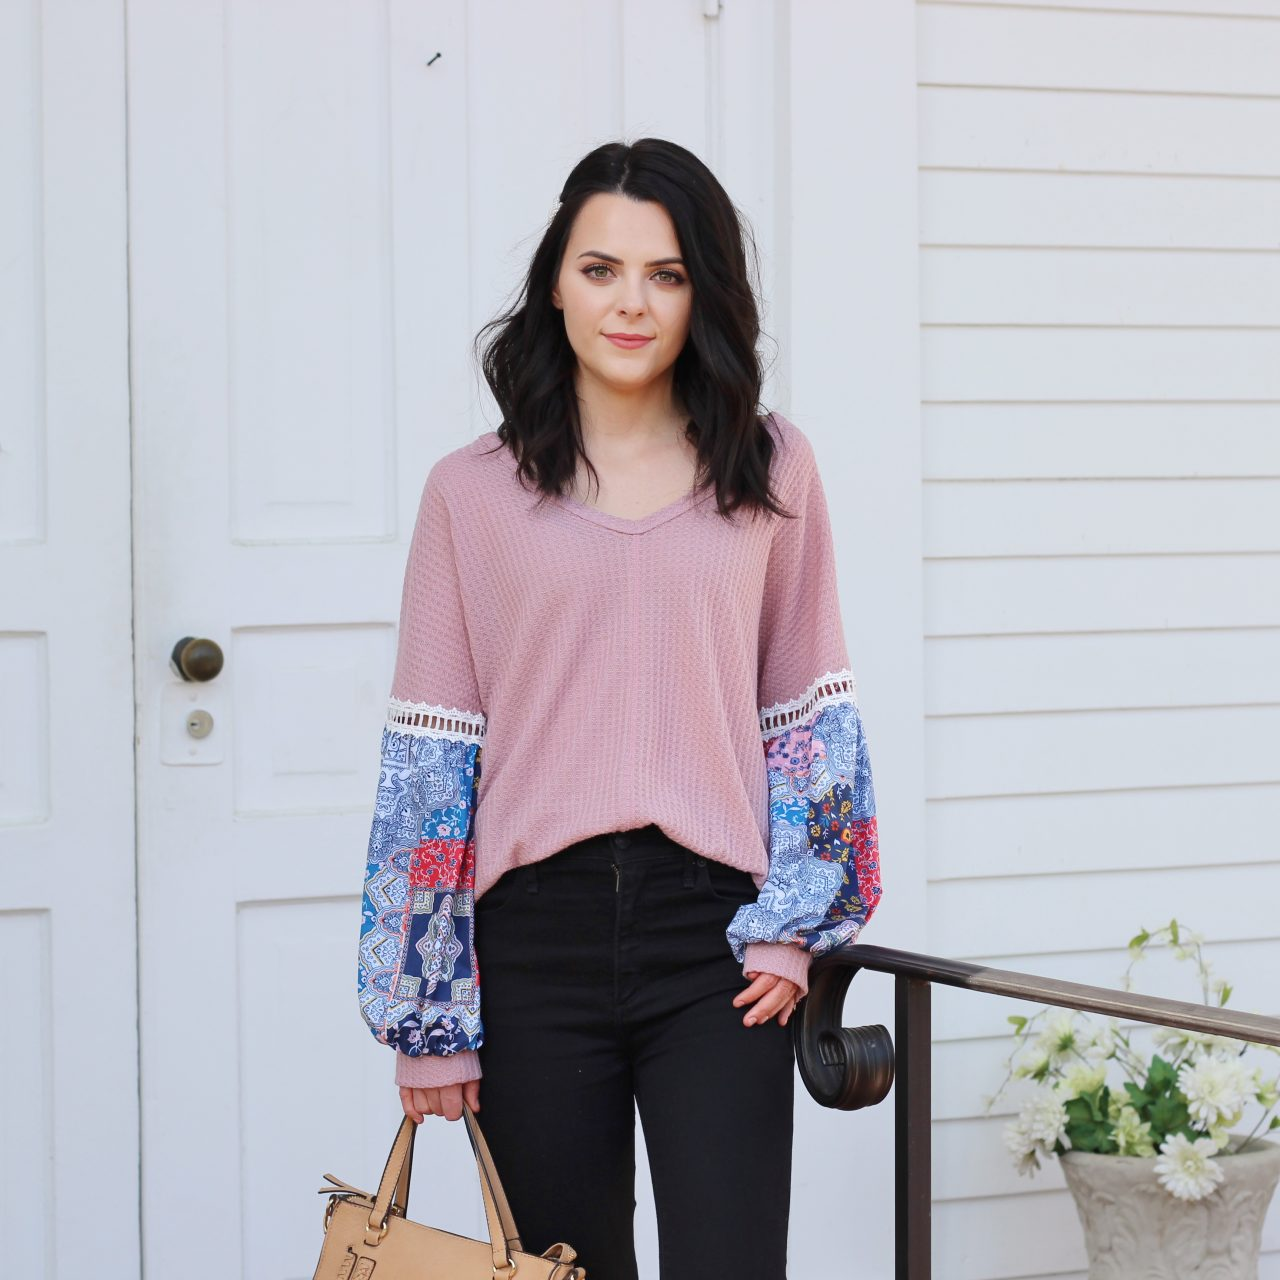 Free People Inspired Sweater!